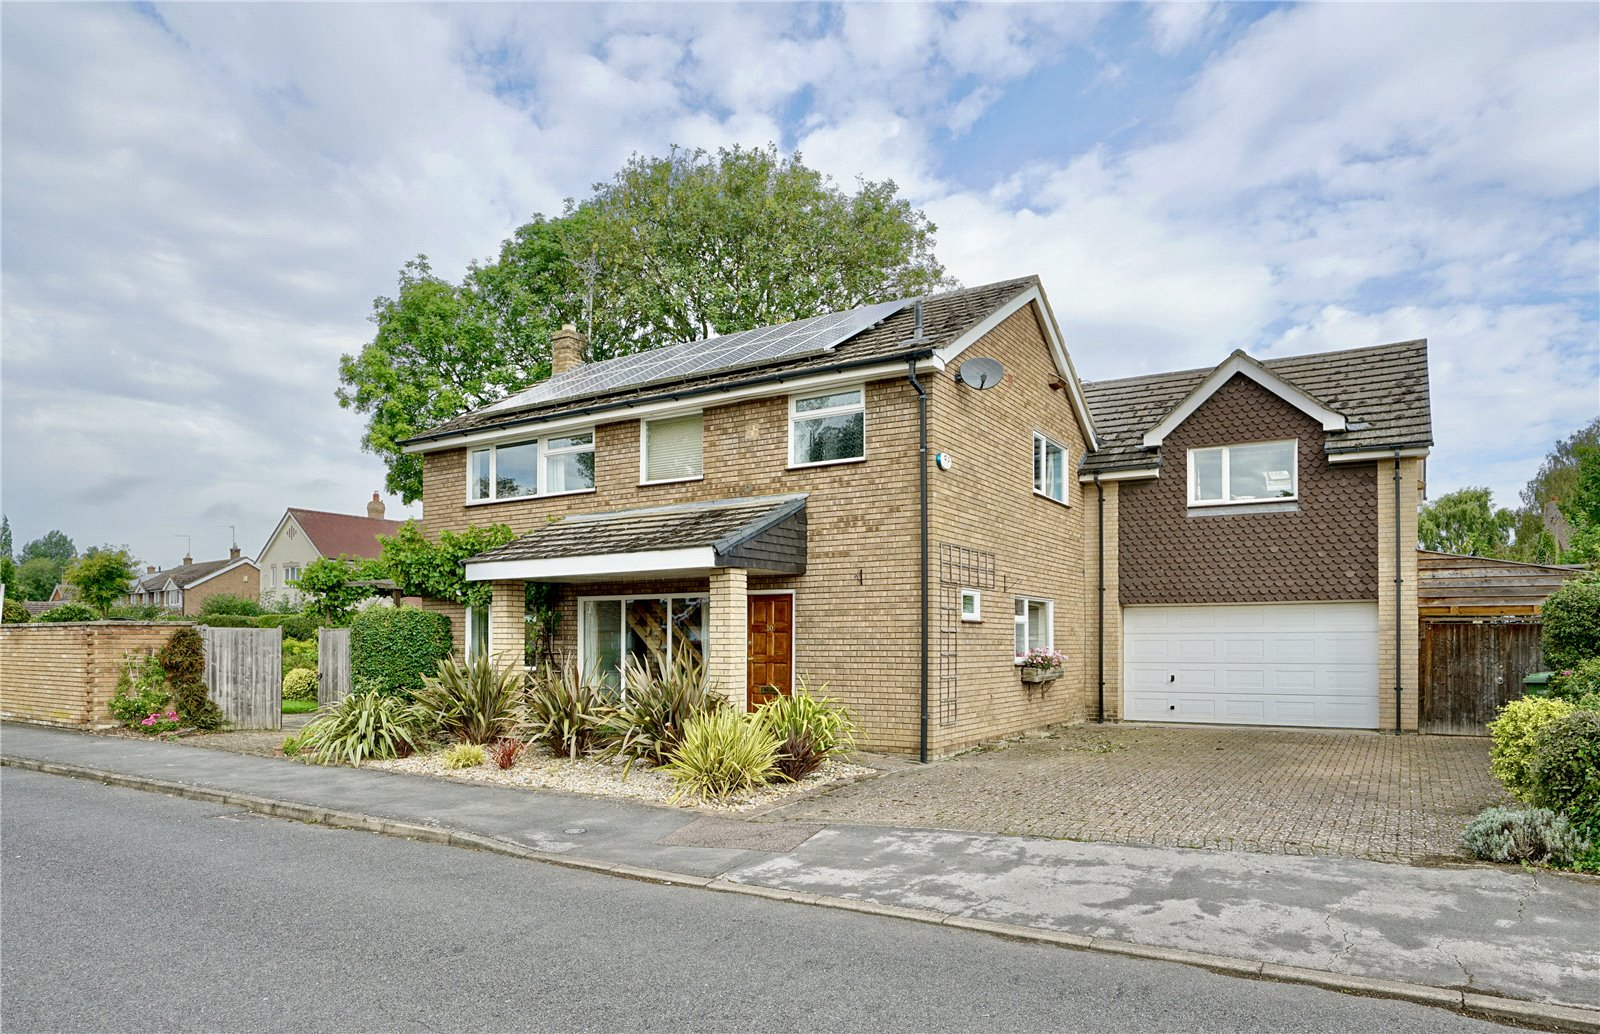 5 bed house for sale in Buckden, St Hughs Road, PE19 5UB  - Property Image 1